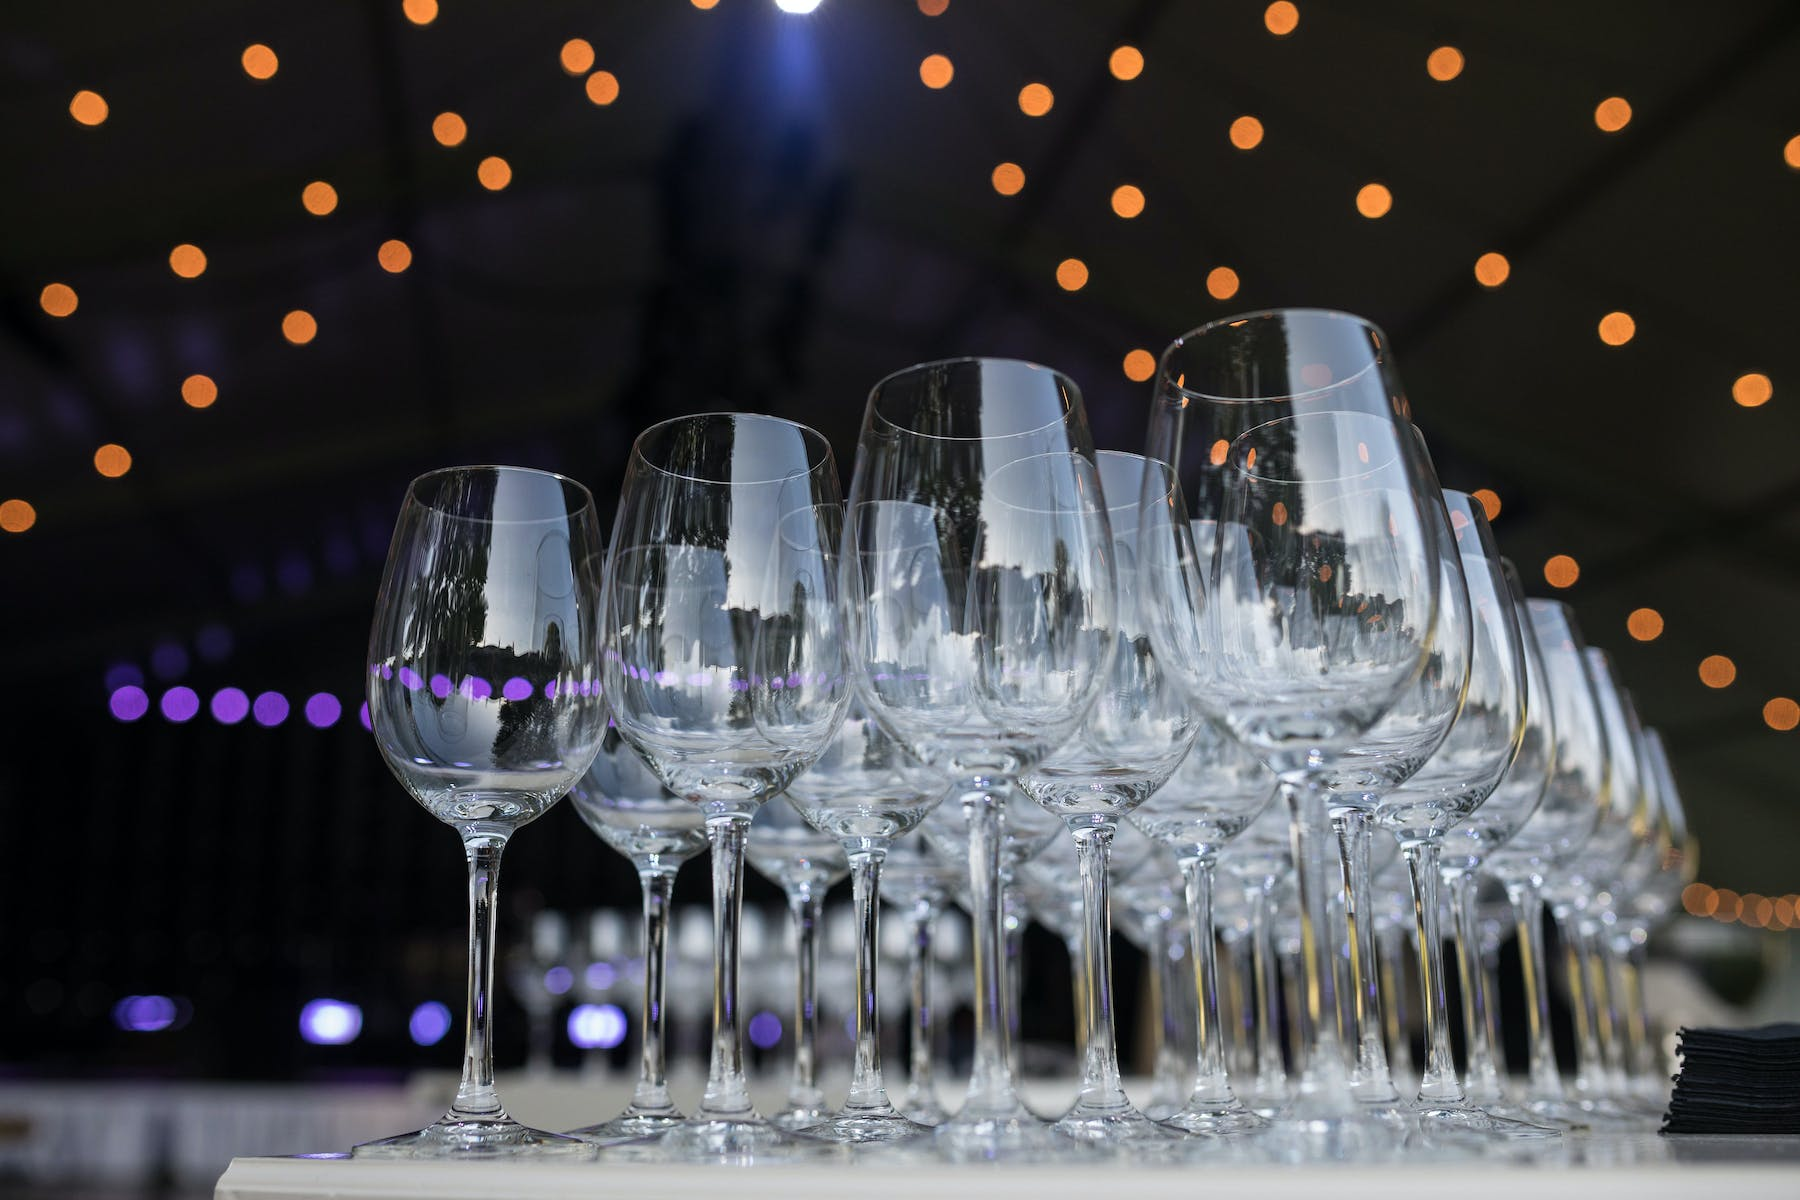 a row of wine glasses sitting on a table